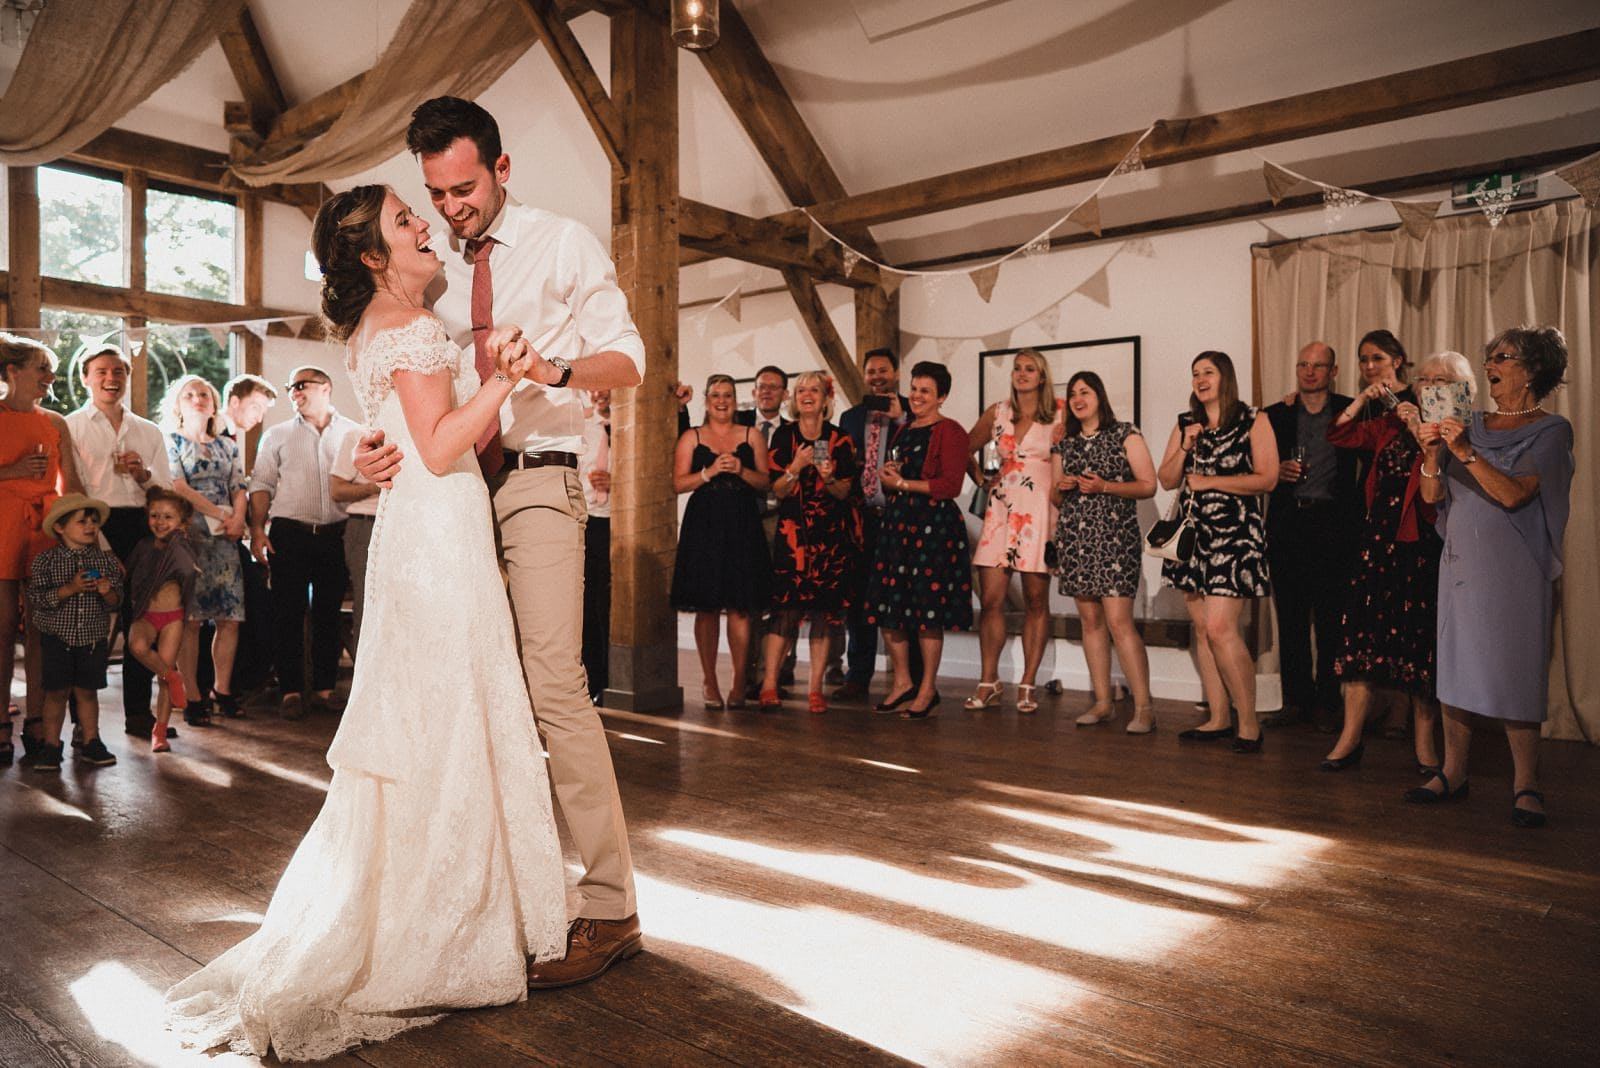 The first dance at Nancarrow Farm, with the couple laughing and guests looking on